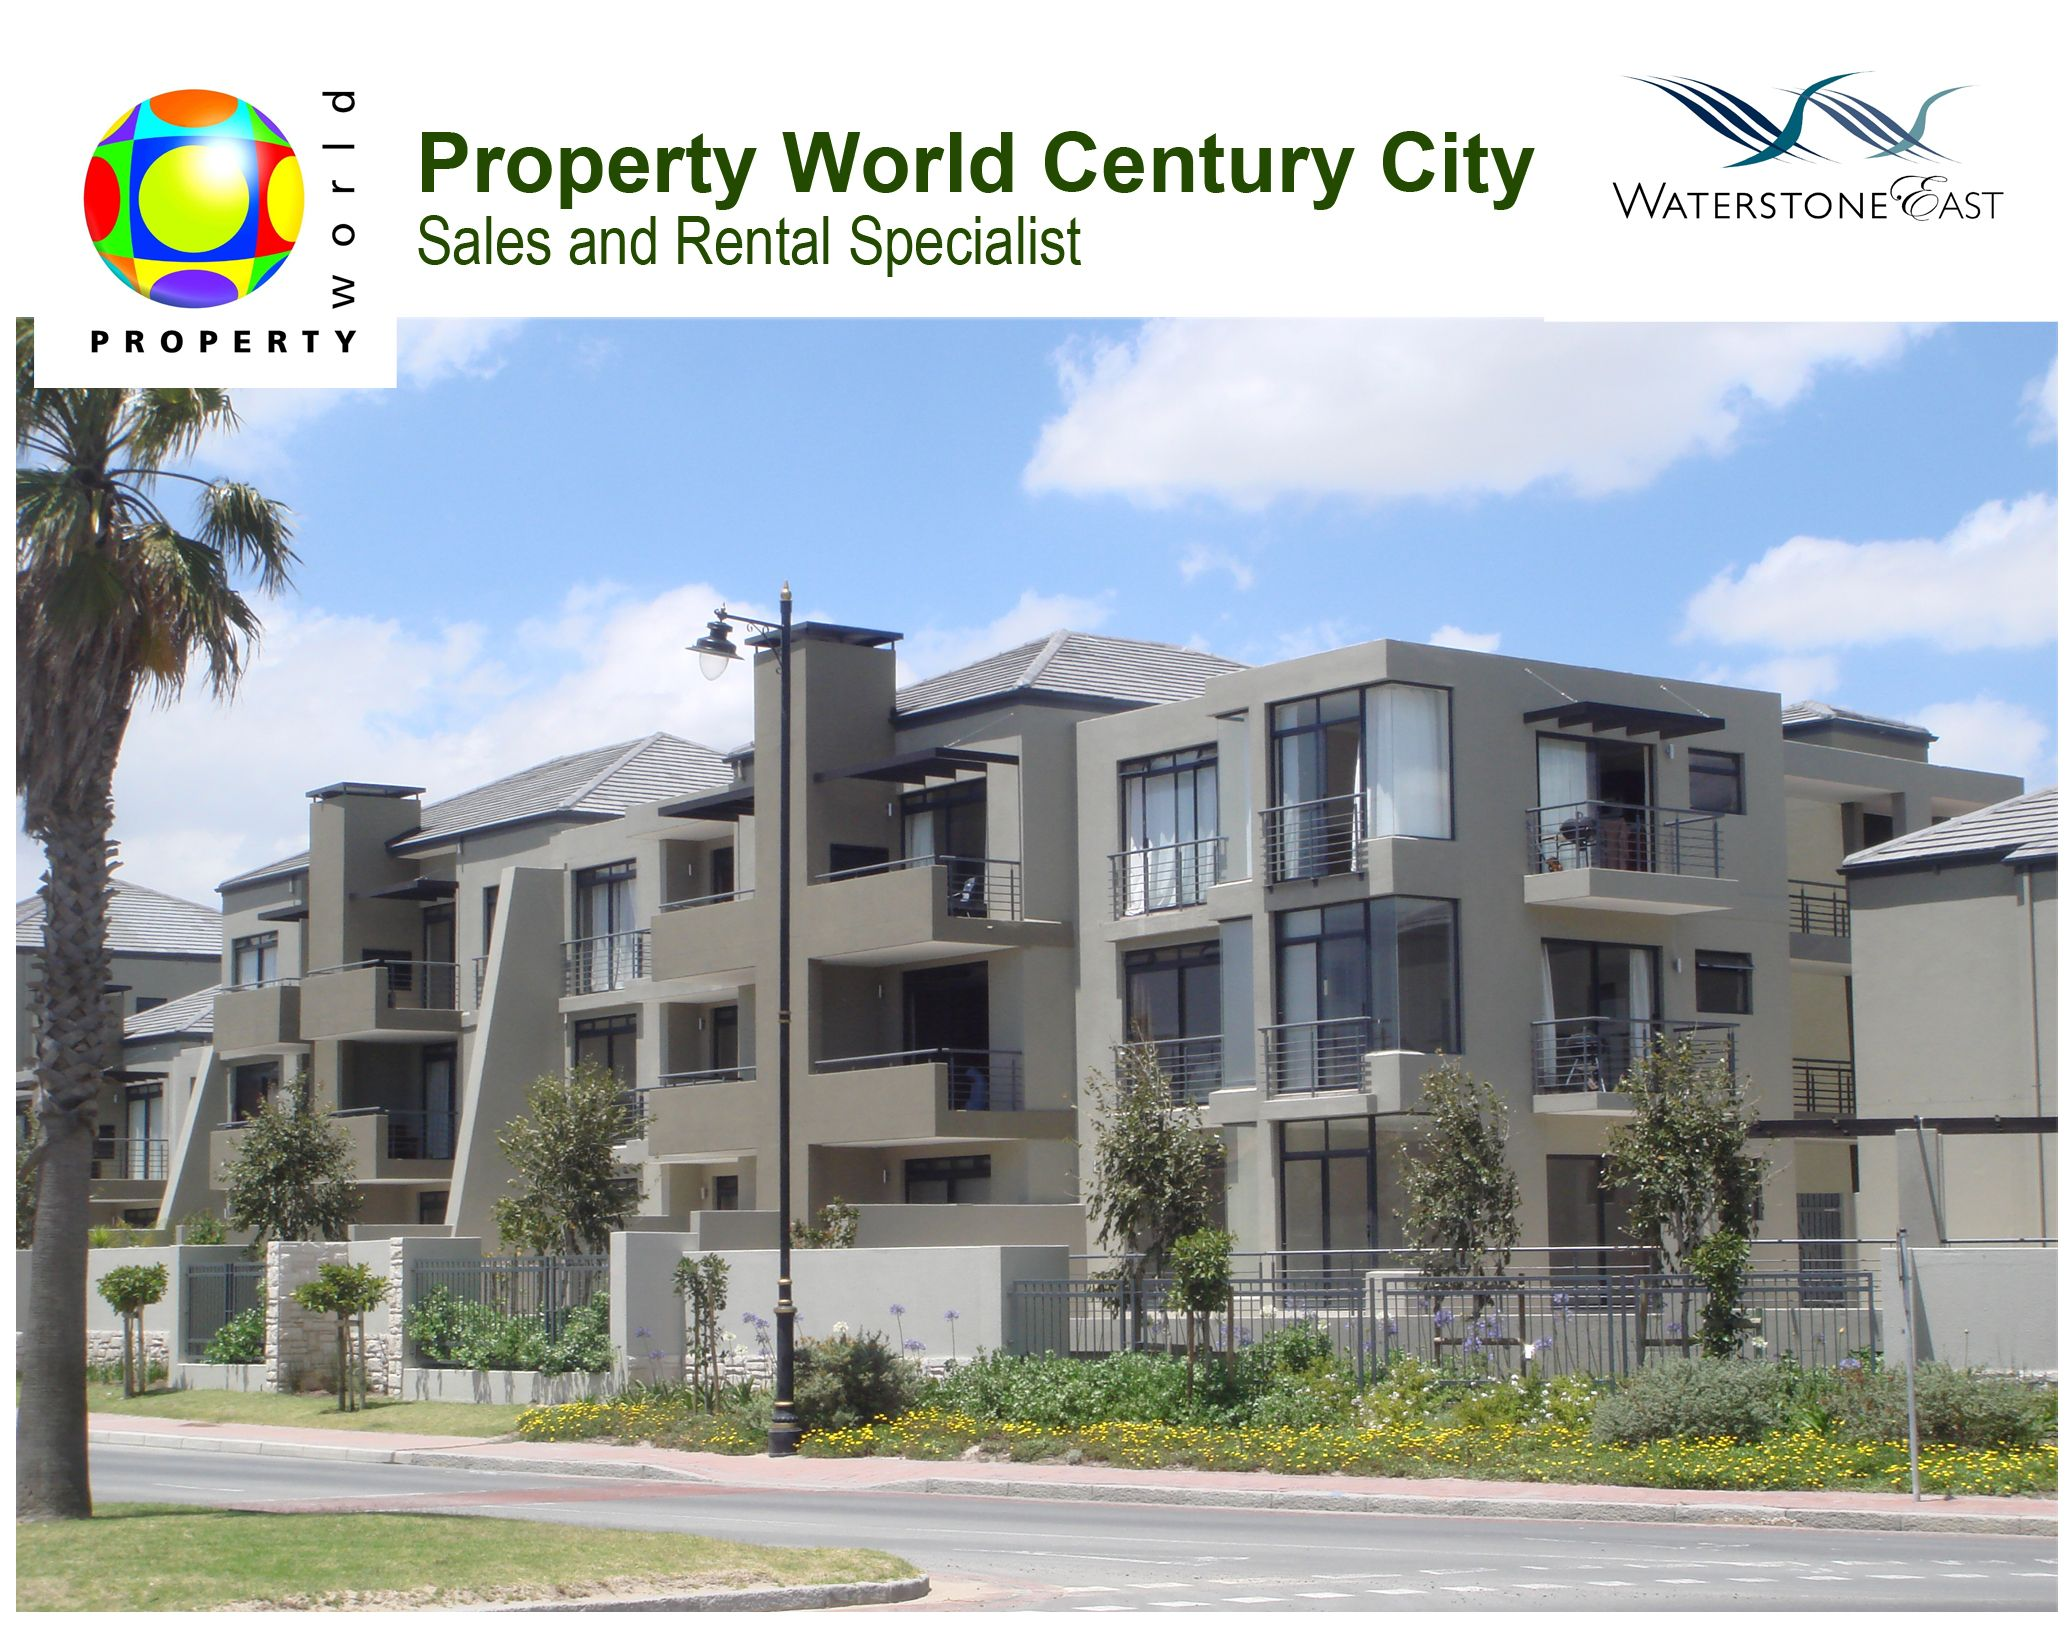 Waterstone East property is a spectacular development of 112 low-rise, walk-up apartments and 13 townhouses based in Century City!